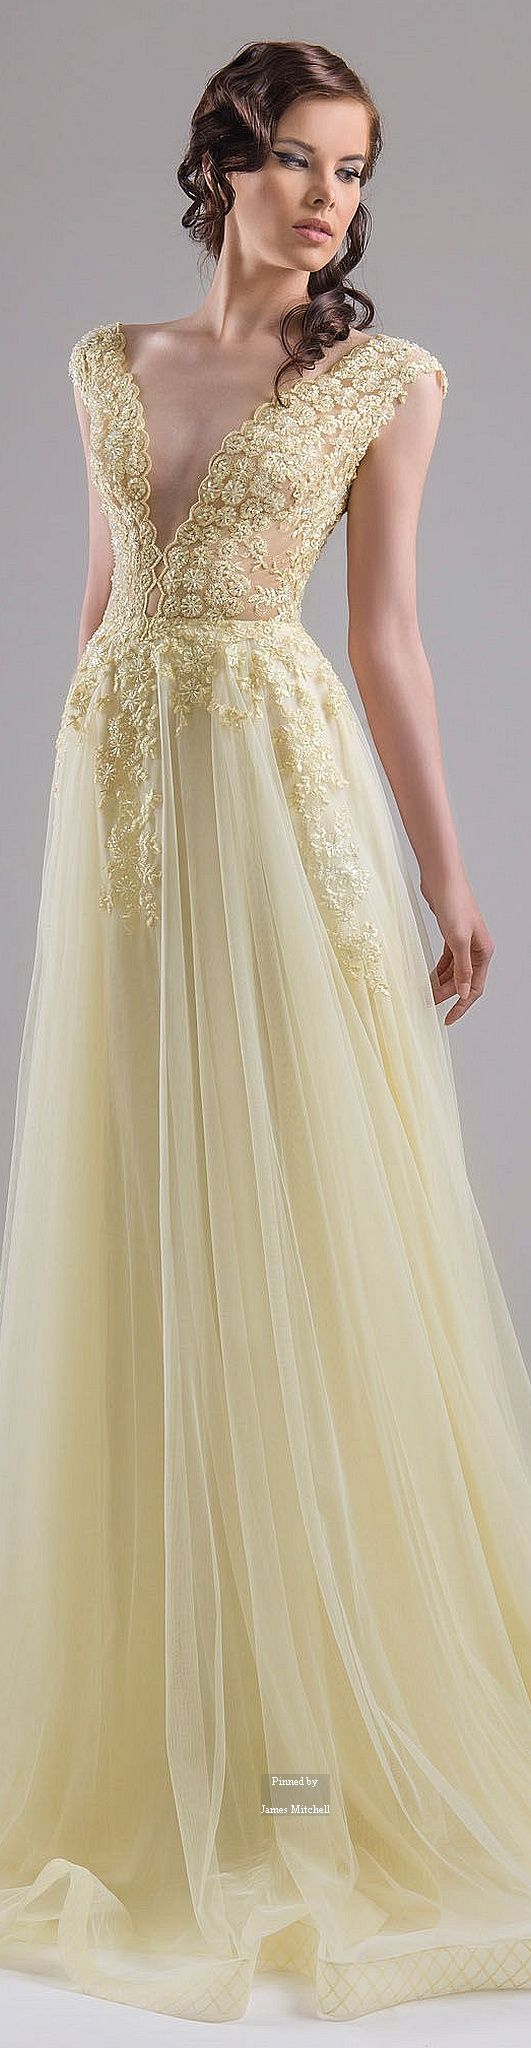 Chrystelle Atallah ~ Couture Spring Lemon Chiffon Gown w Plunging Neckline + Cascading Embroidery and Pleated Full Skirt 2015